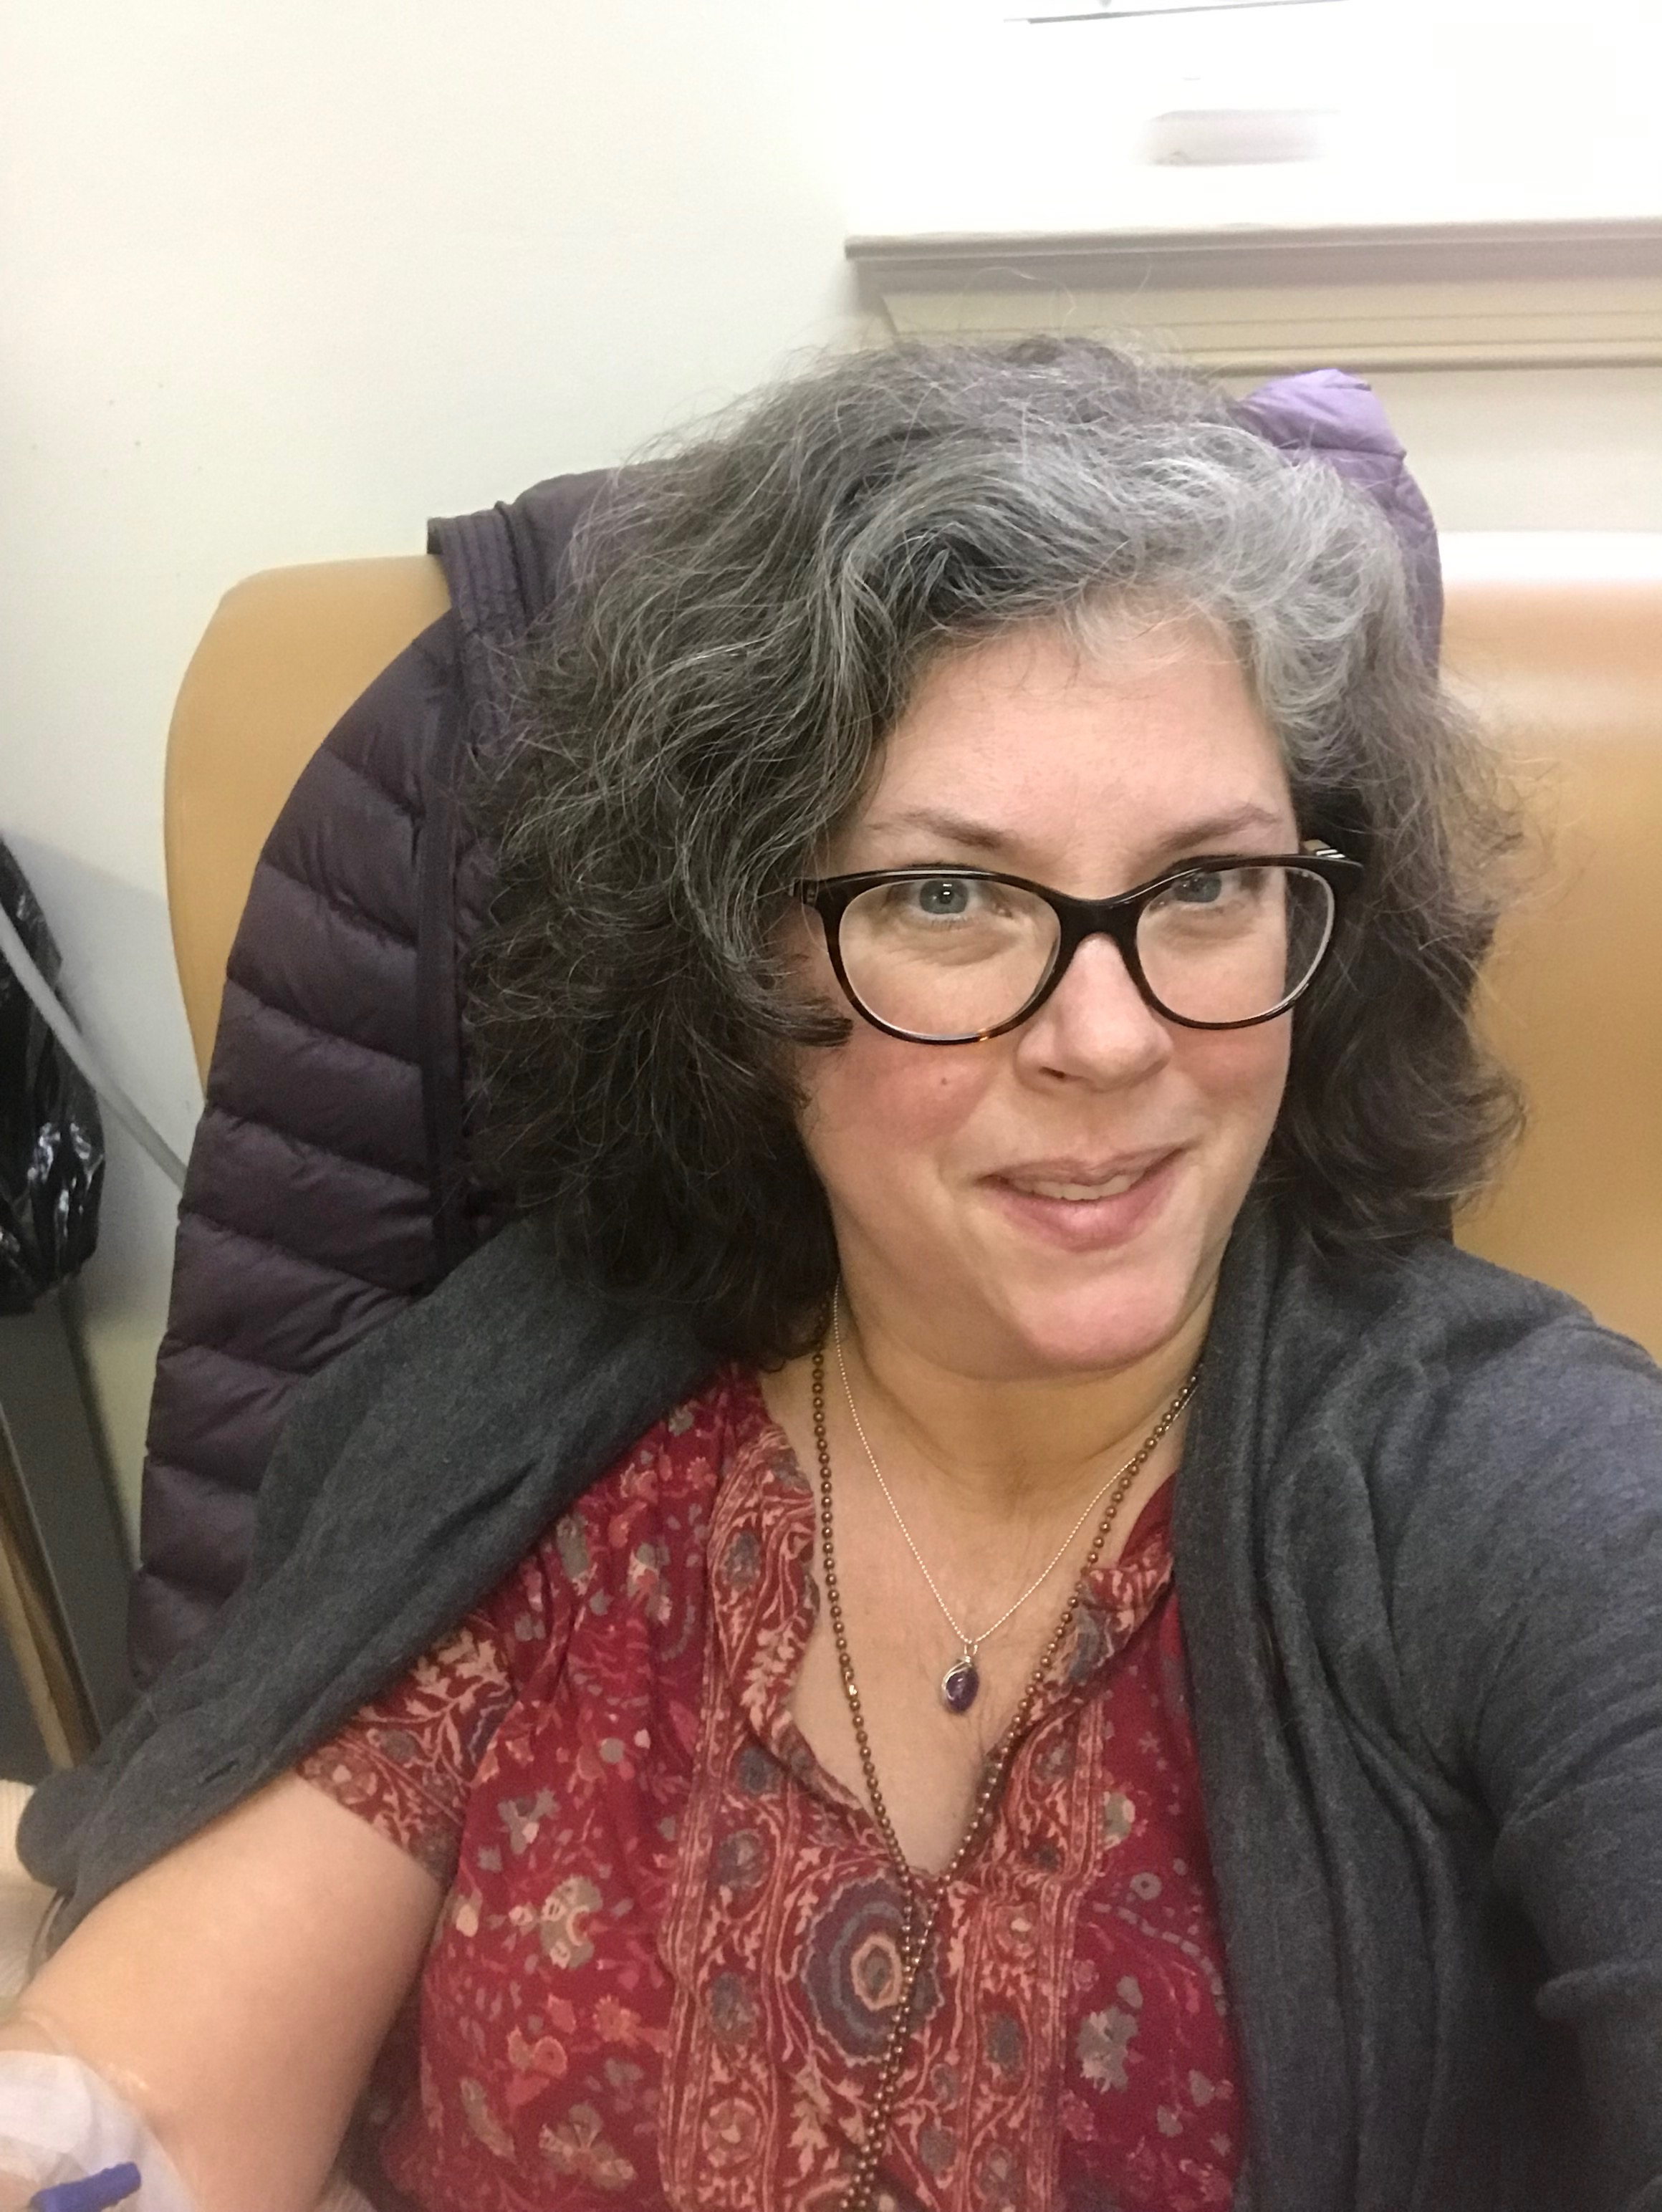 Here's me on Tuesday, choosing to be happy during my regular IV treatment for rheumatoid arthritis.